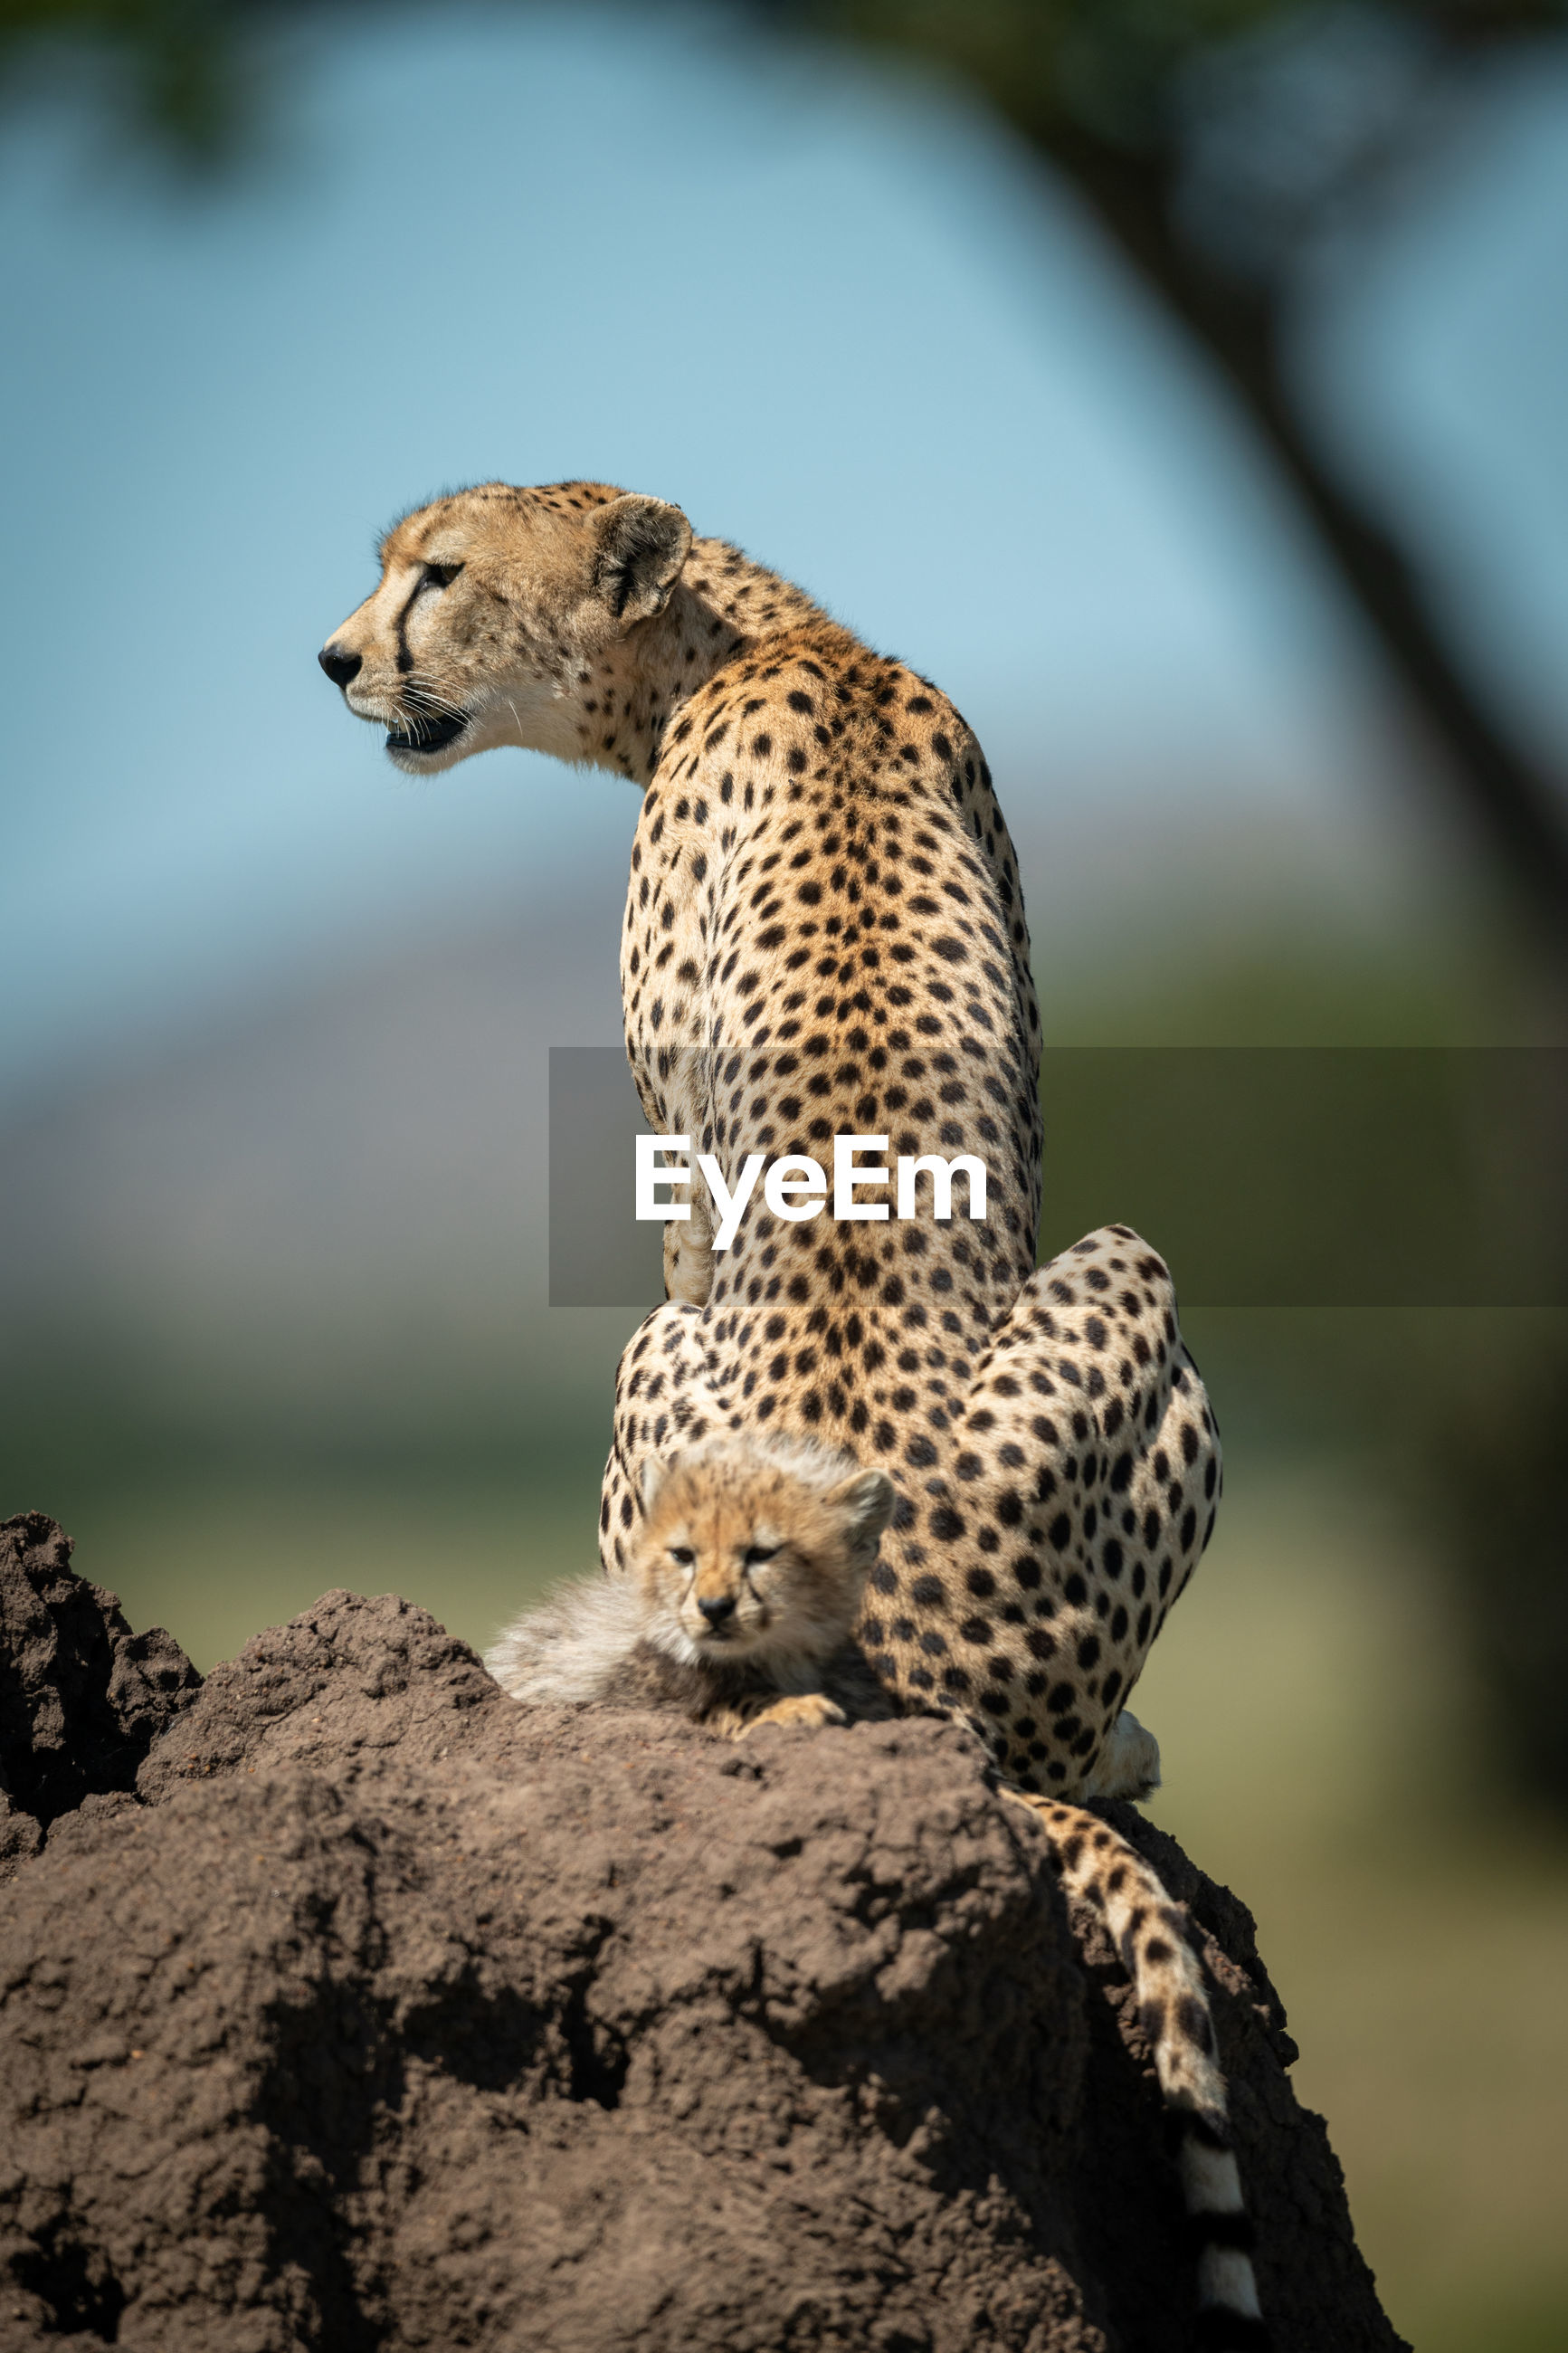 Cheetah on land in forest